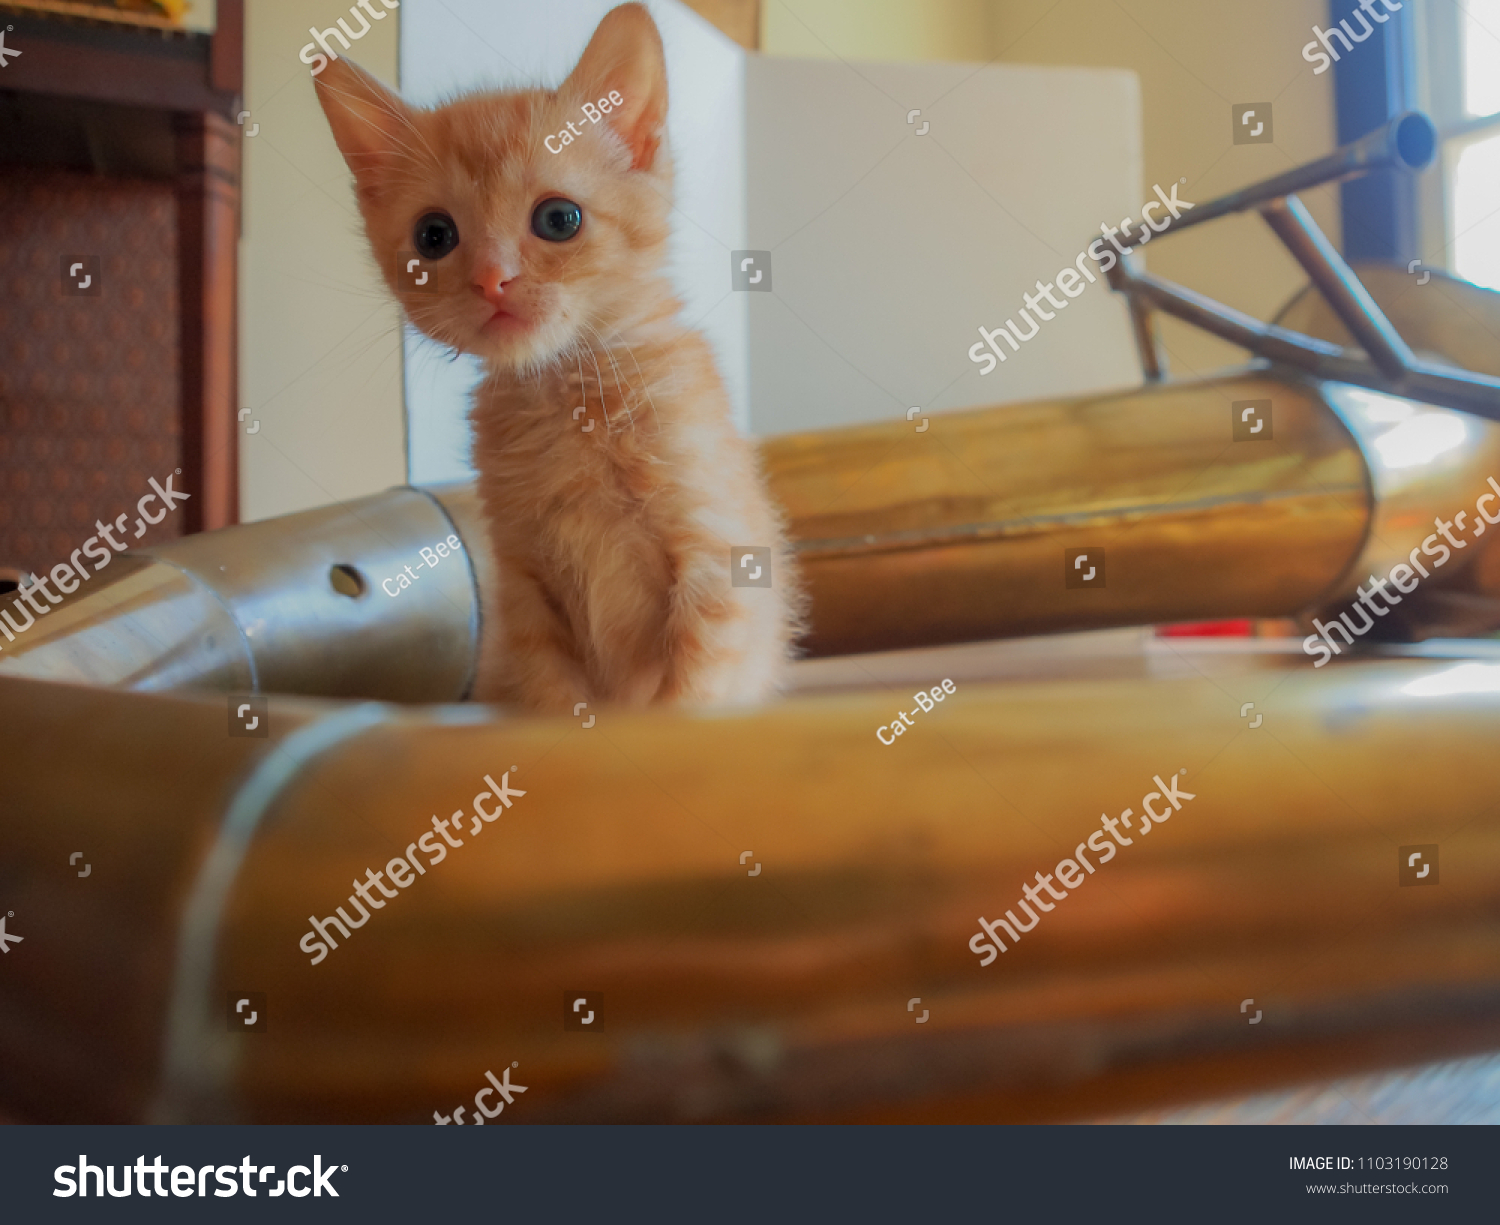 Kitten with a traditional handmade brass instrument from Sulawesi,  Indonesia.